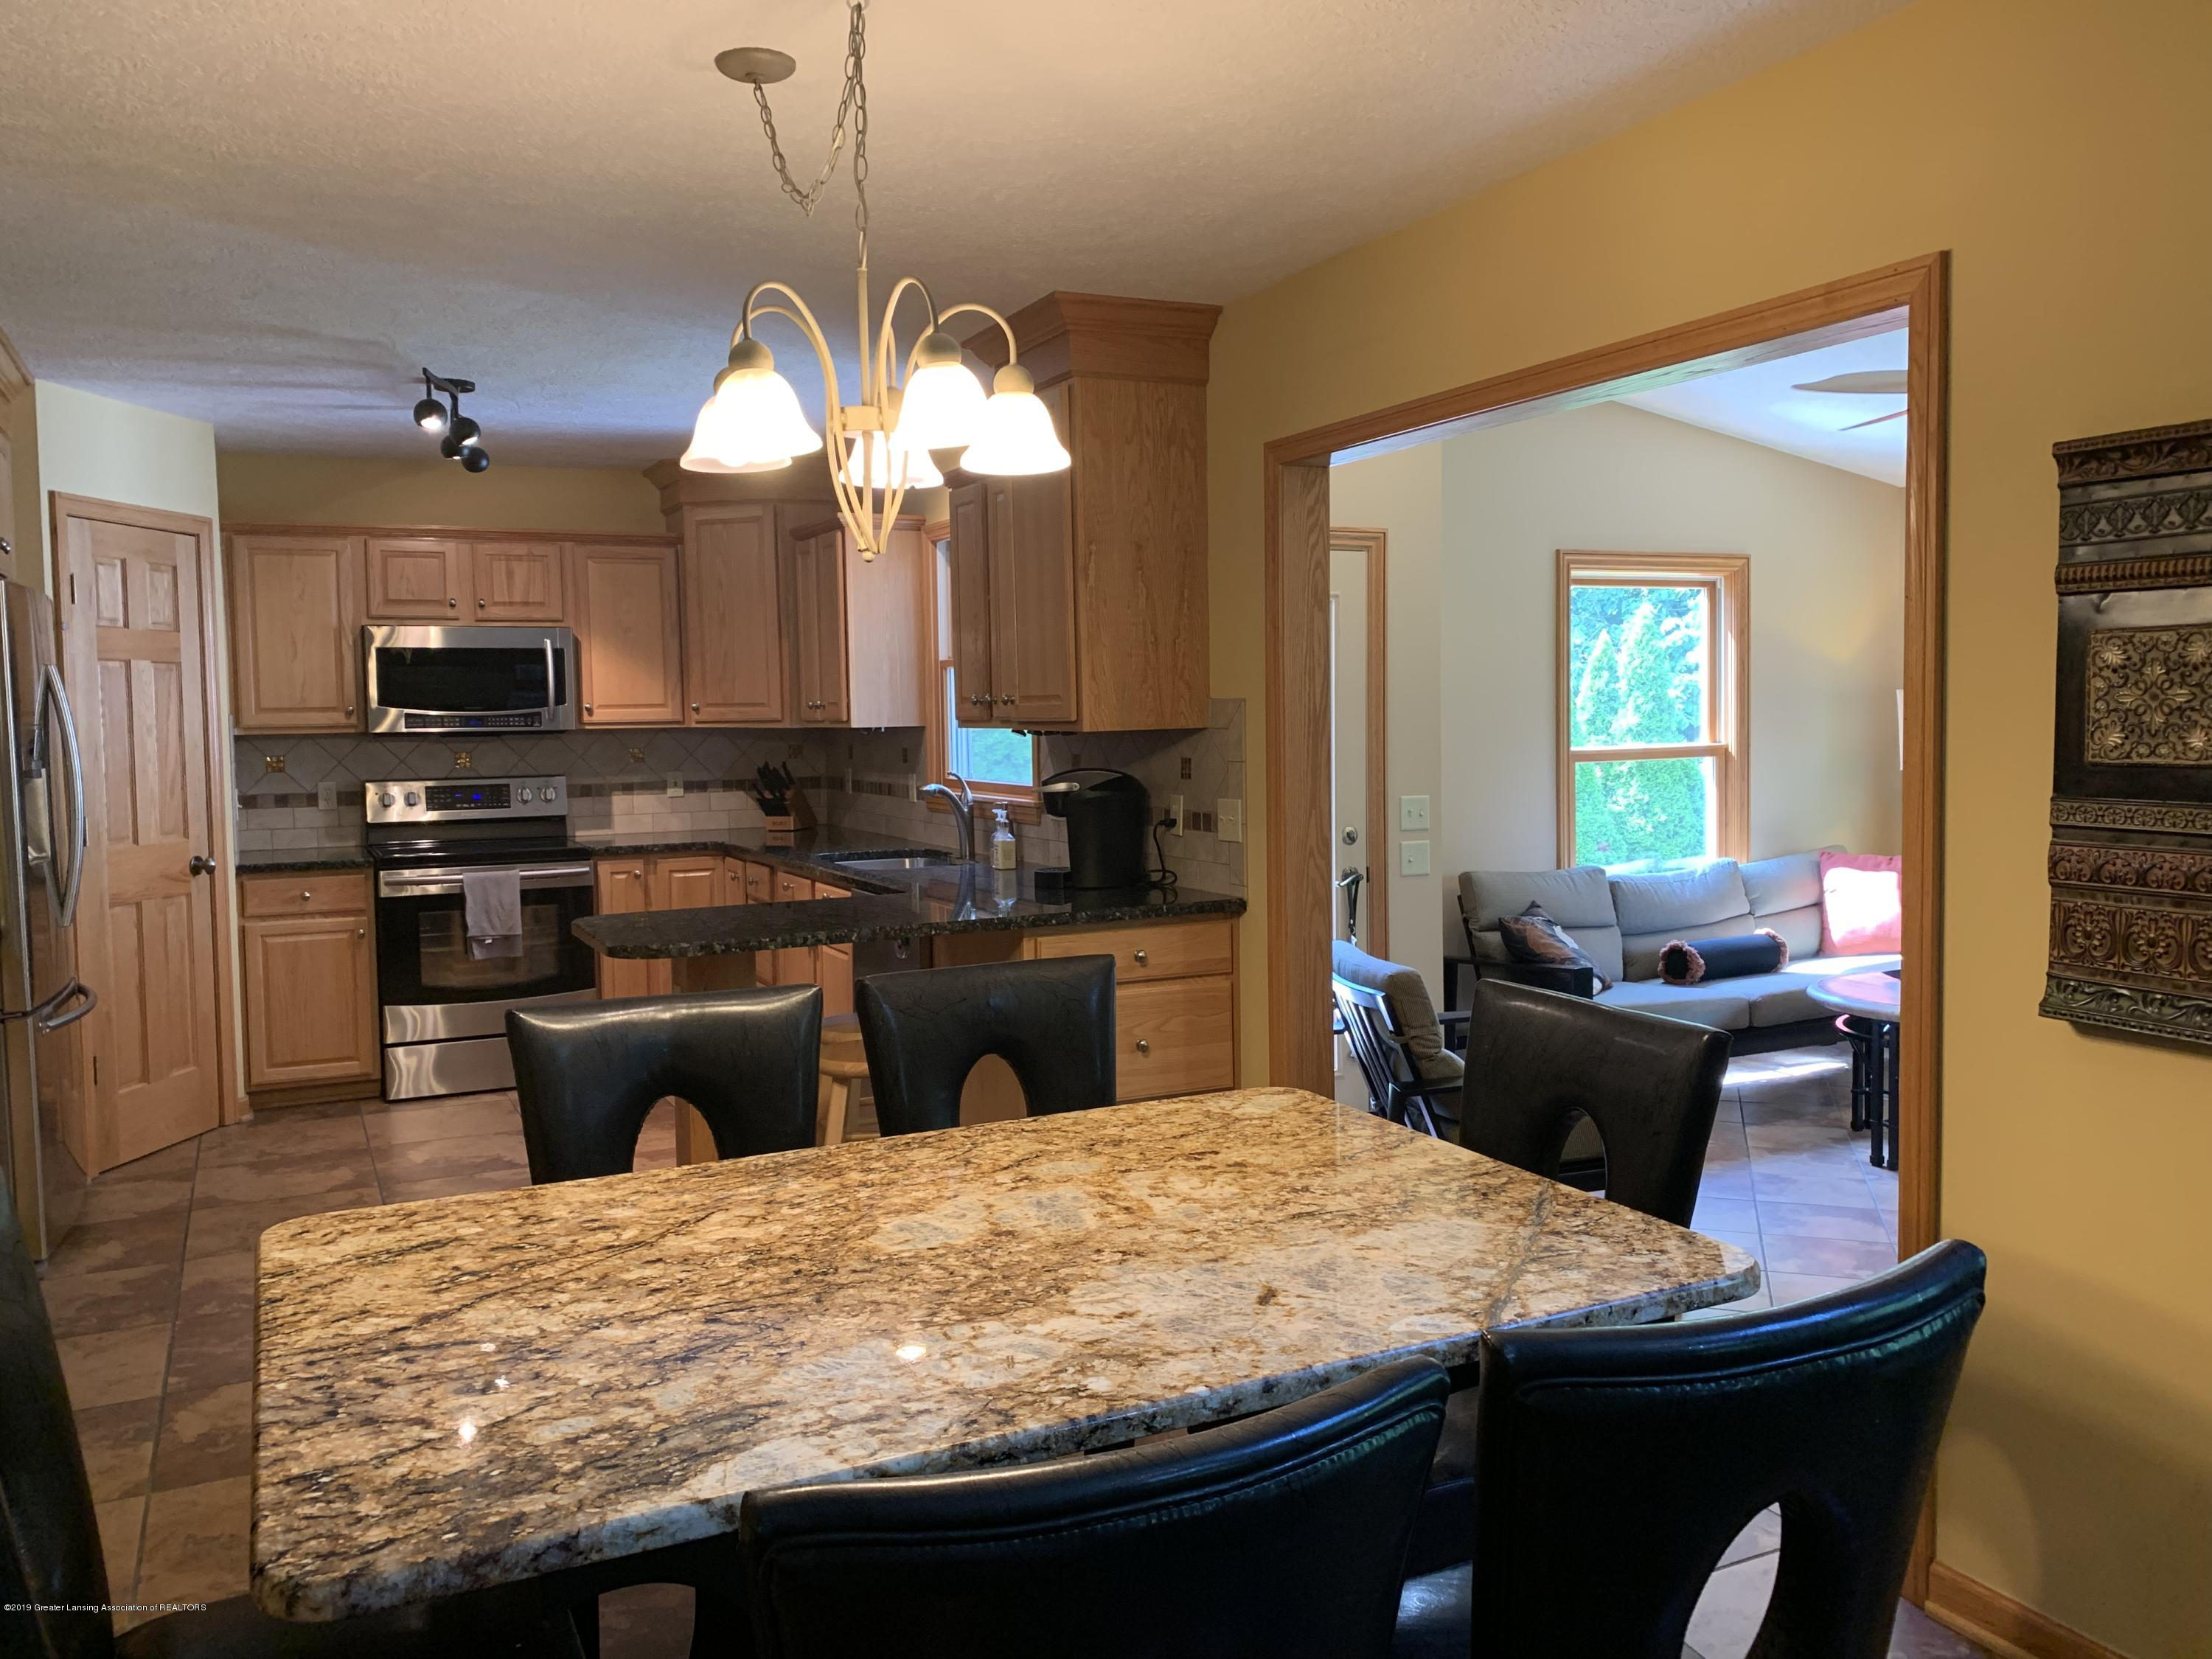 3150 Crofton Dr - Kitchen Dining - 25